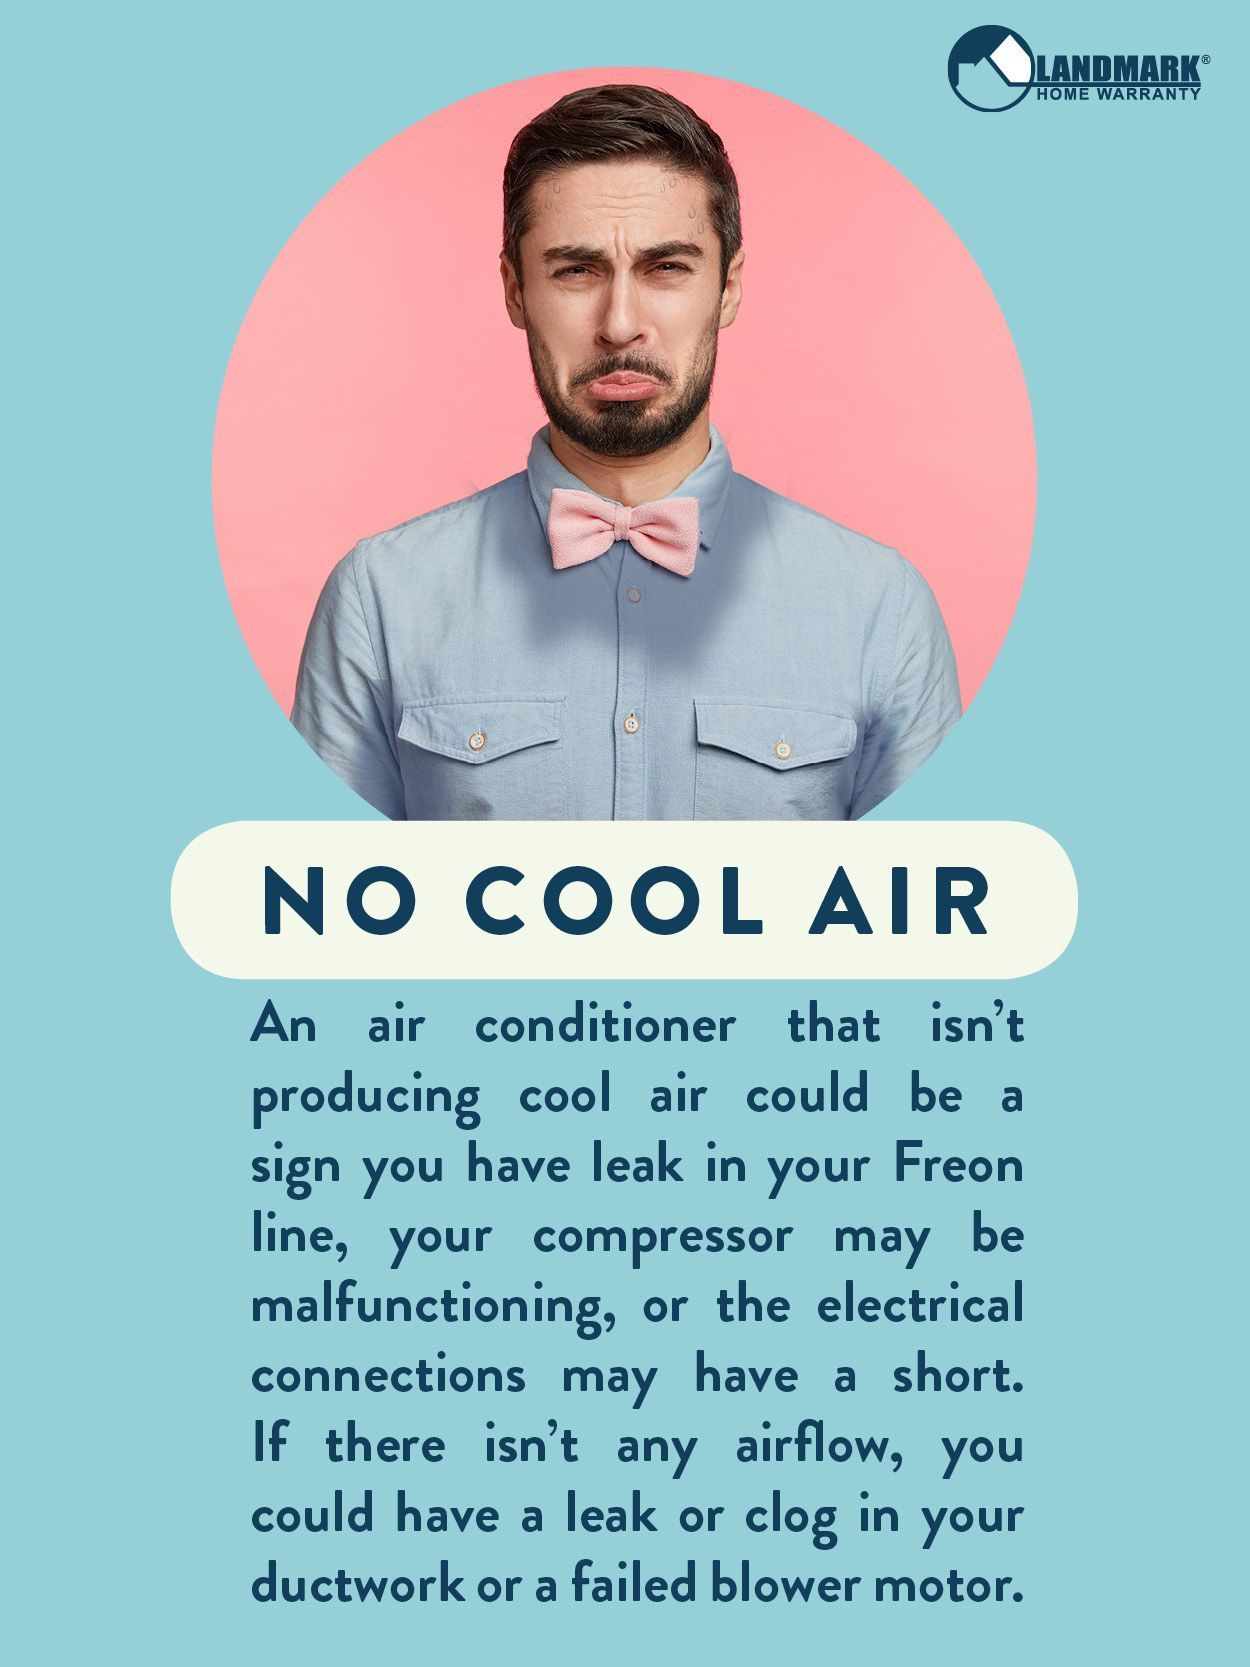 It's HOT! Especially if your air conditioner isn't blowing